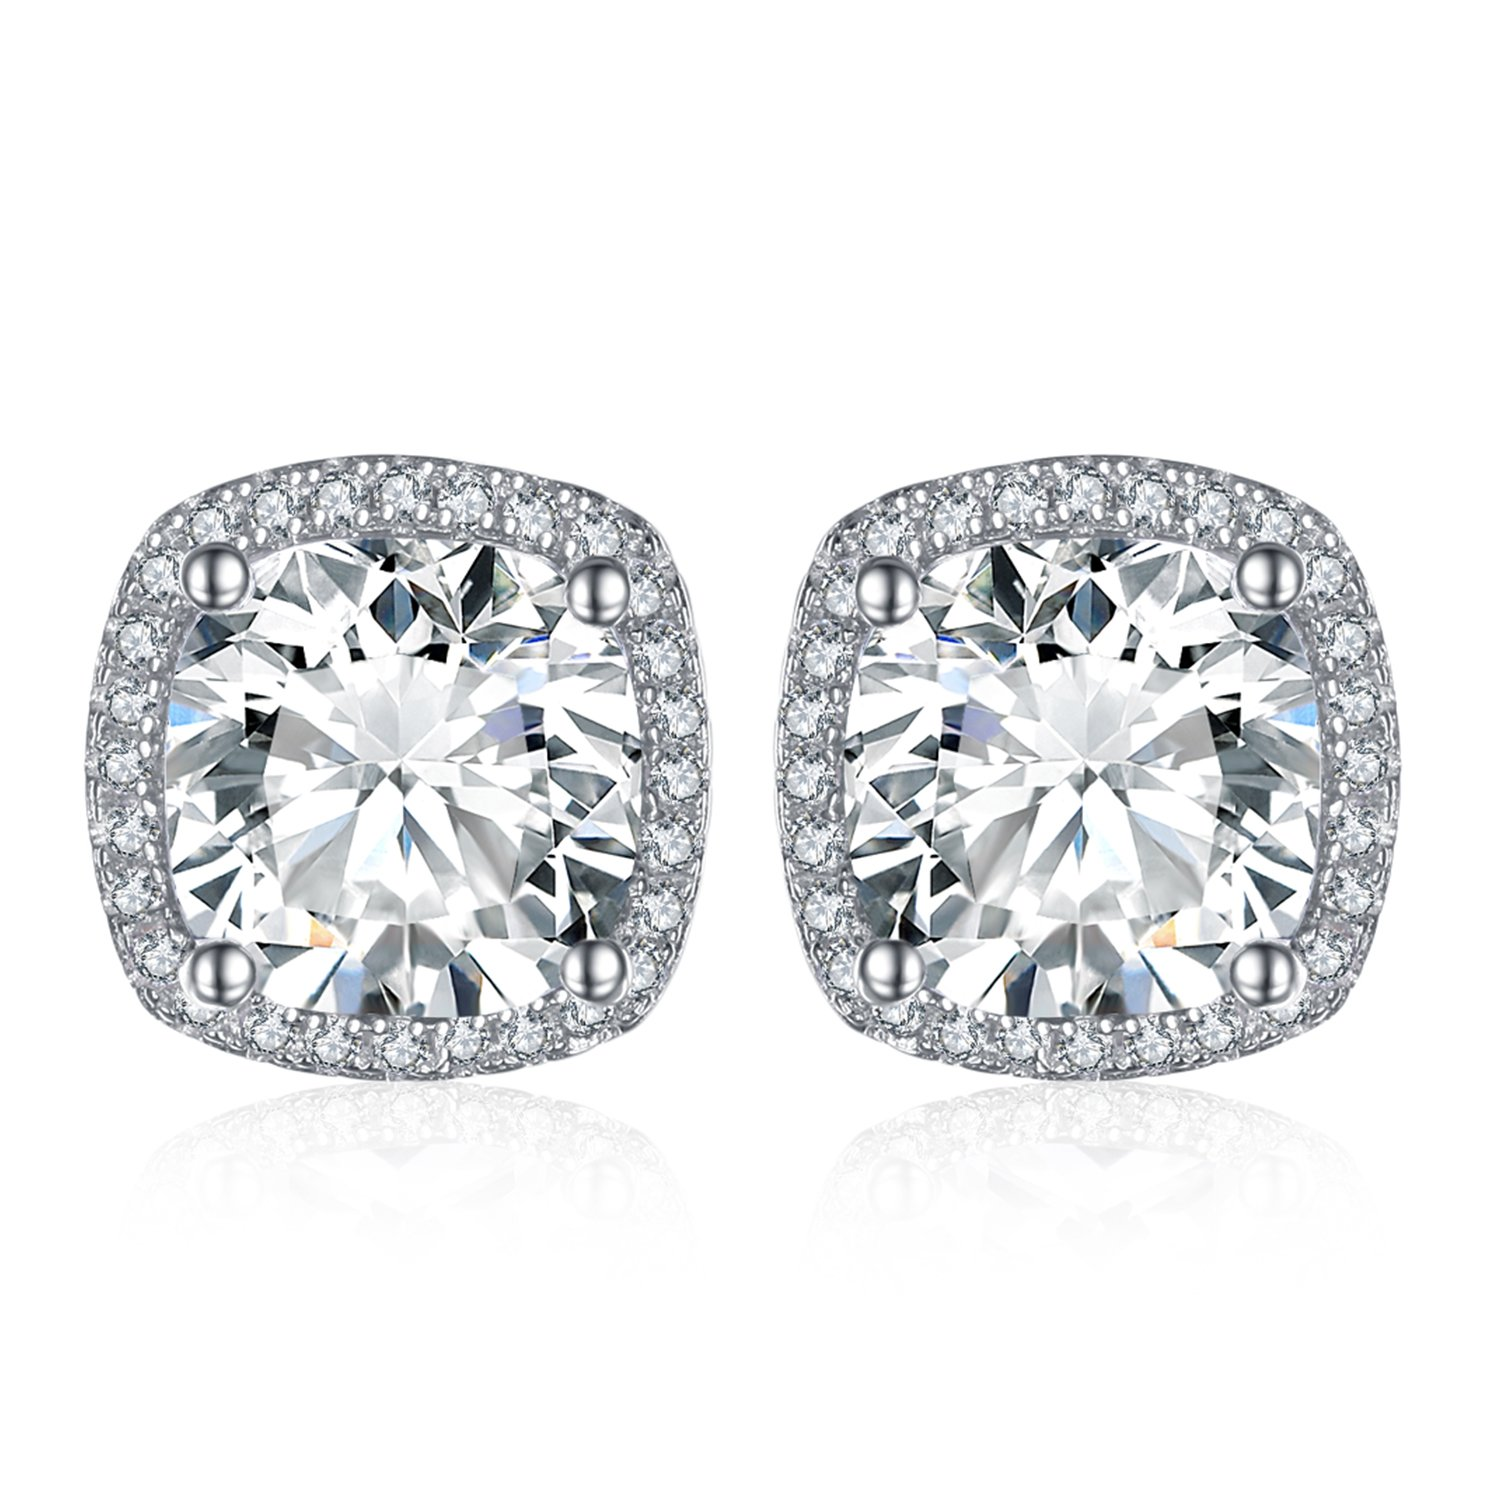 JewelryPalace Cushion 5ct Cubic Zirconia Halo Stud Earrings 925 Sterling Silver